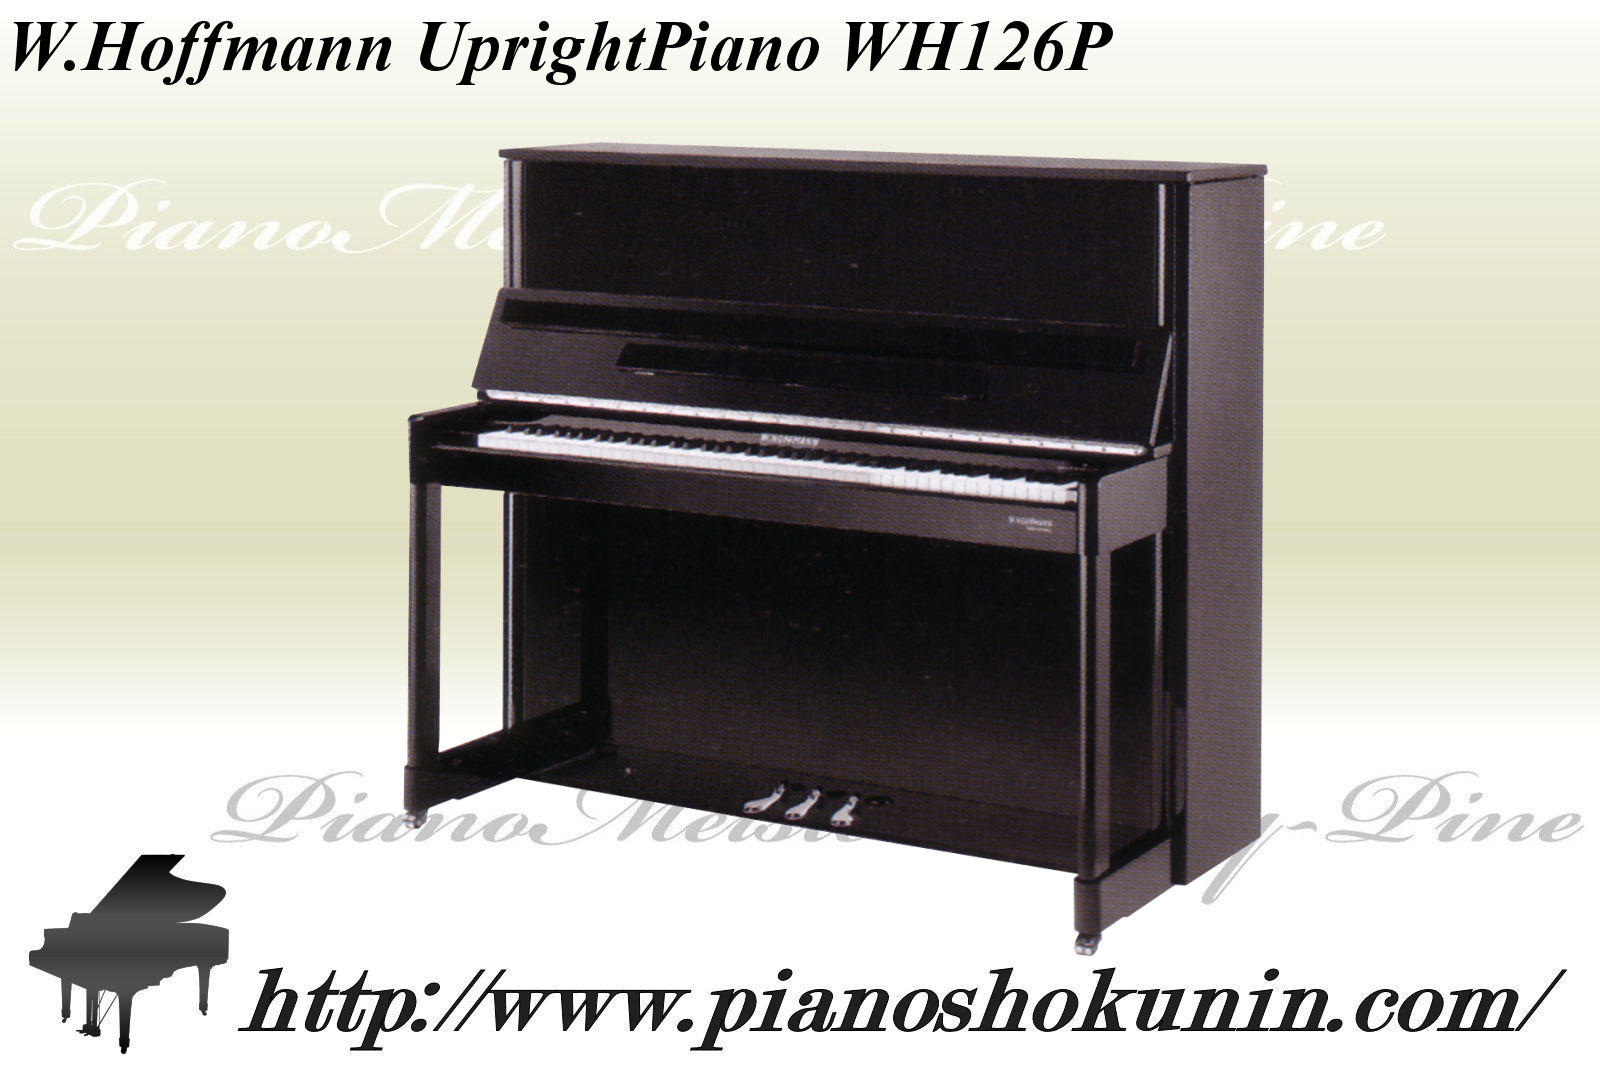 W.Hoffmann UprightPiano WH126P